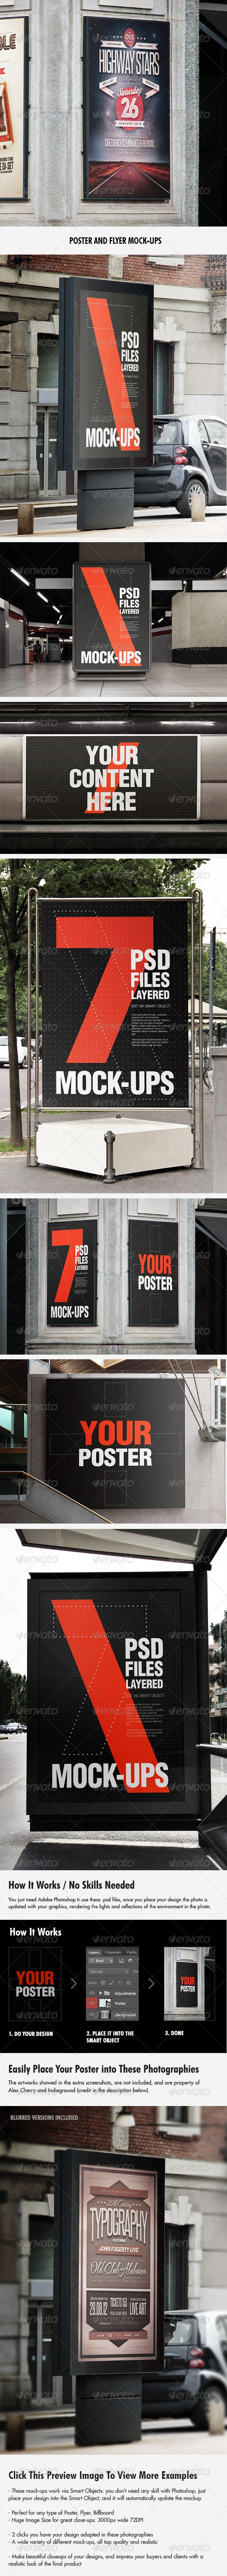 Flyer and Poster Urban Mock-ups - Set Pack by Giallo, $7 on Graphic River